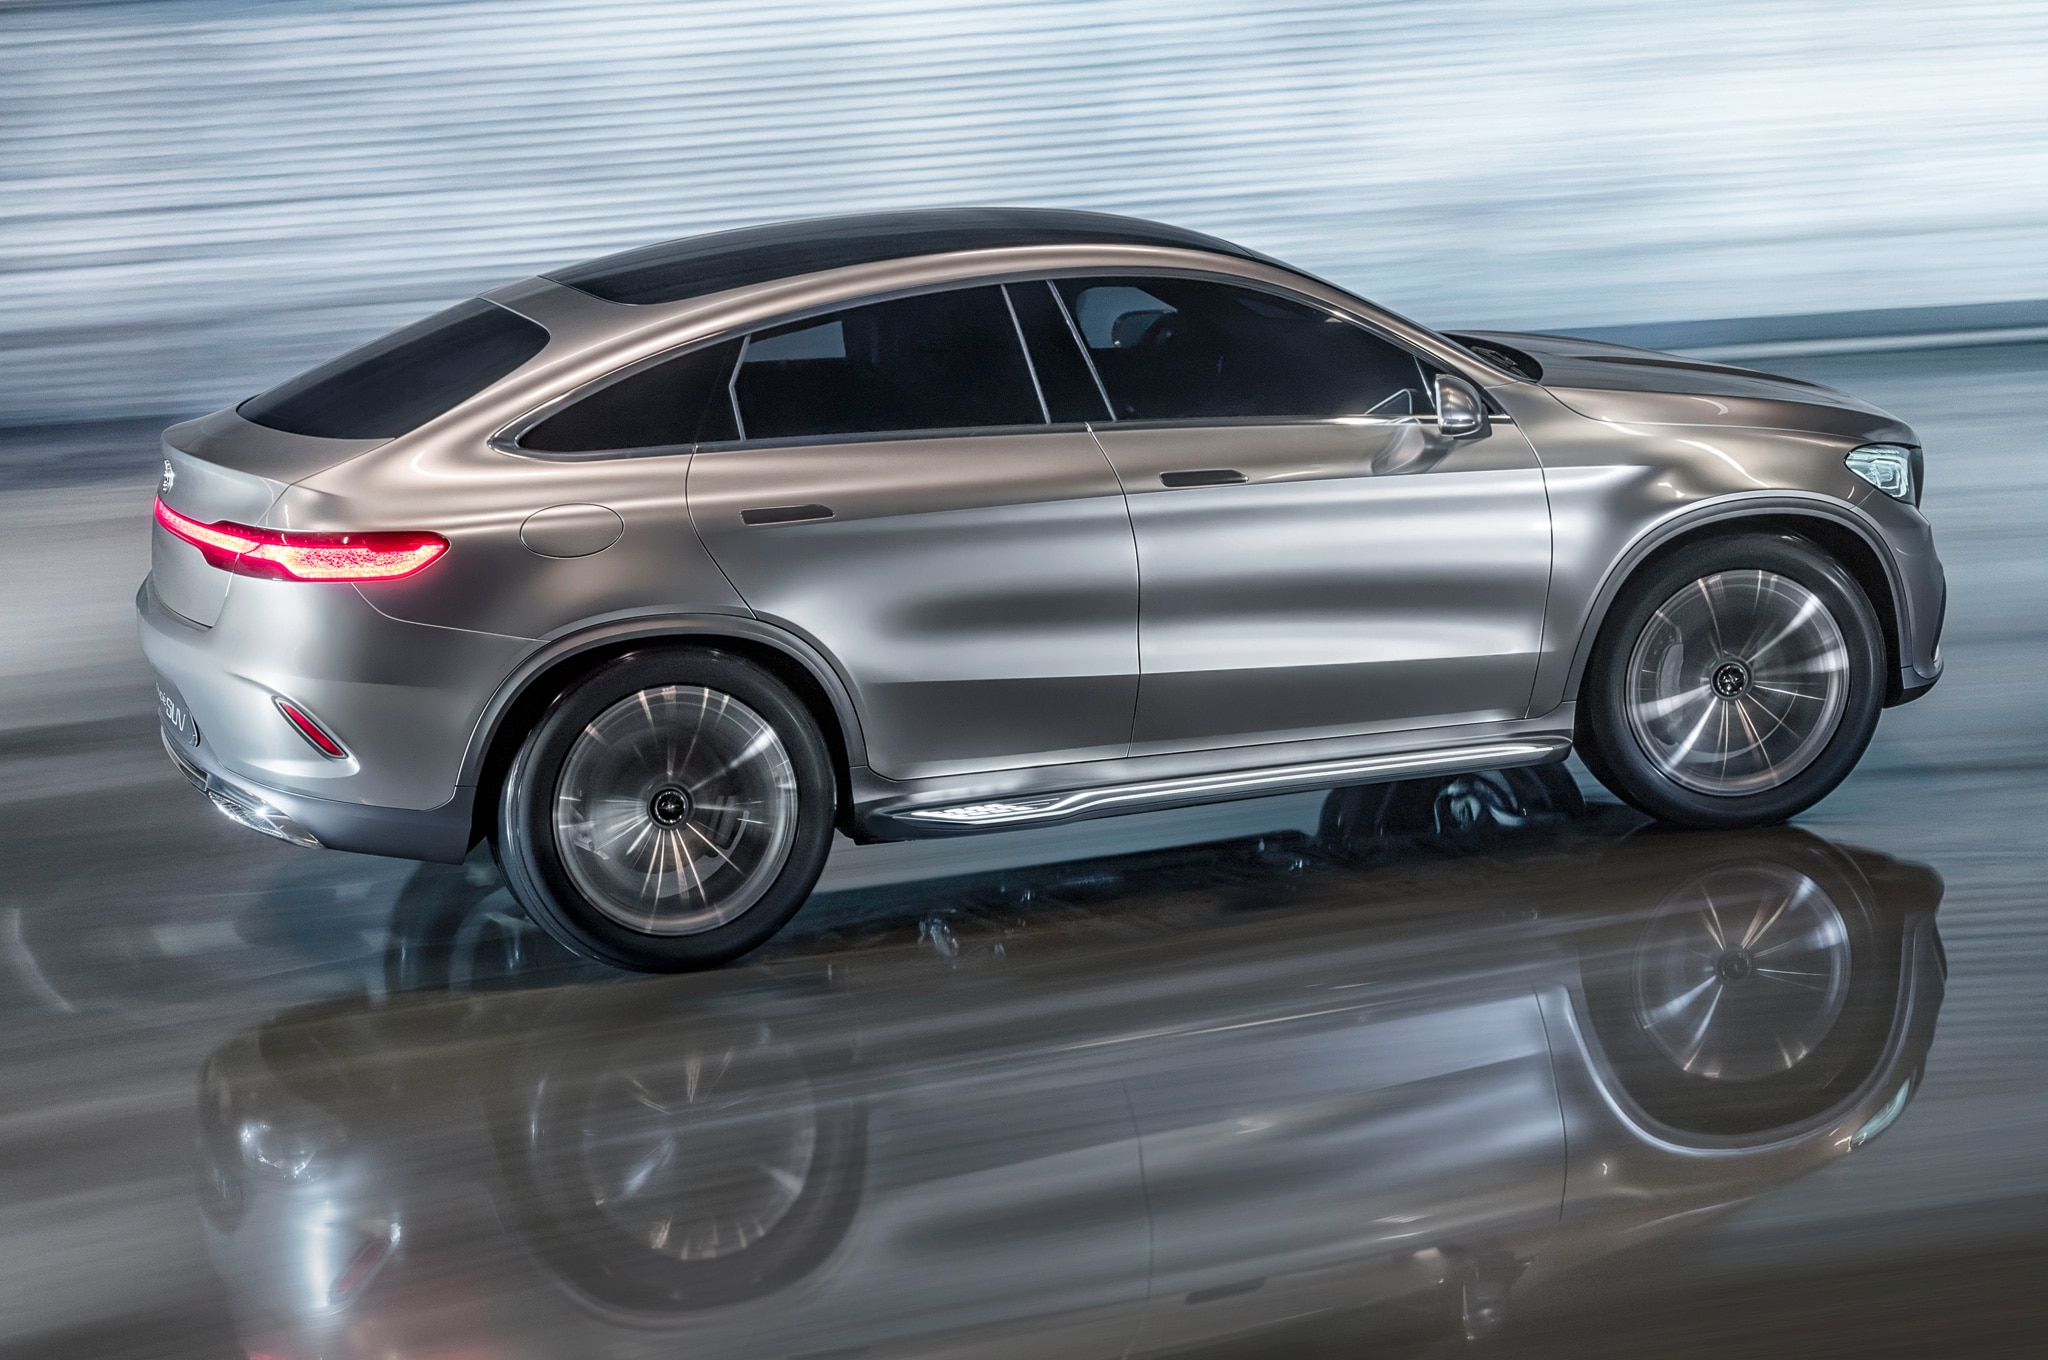 Mercedes Benz Concept Coupe SUV Revealed in Beijing Automobile